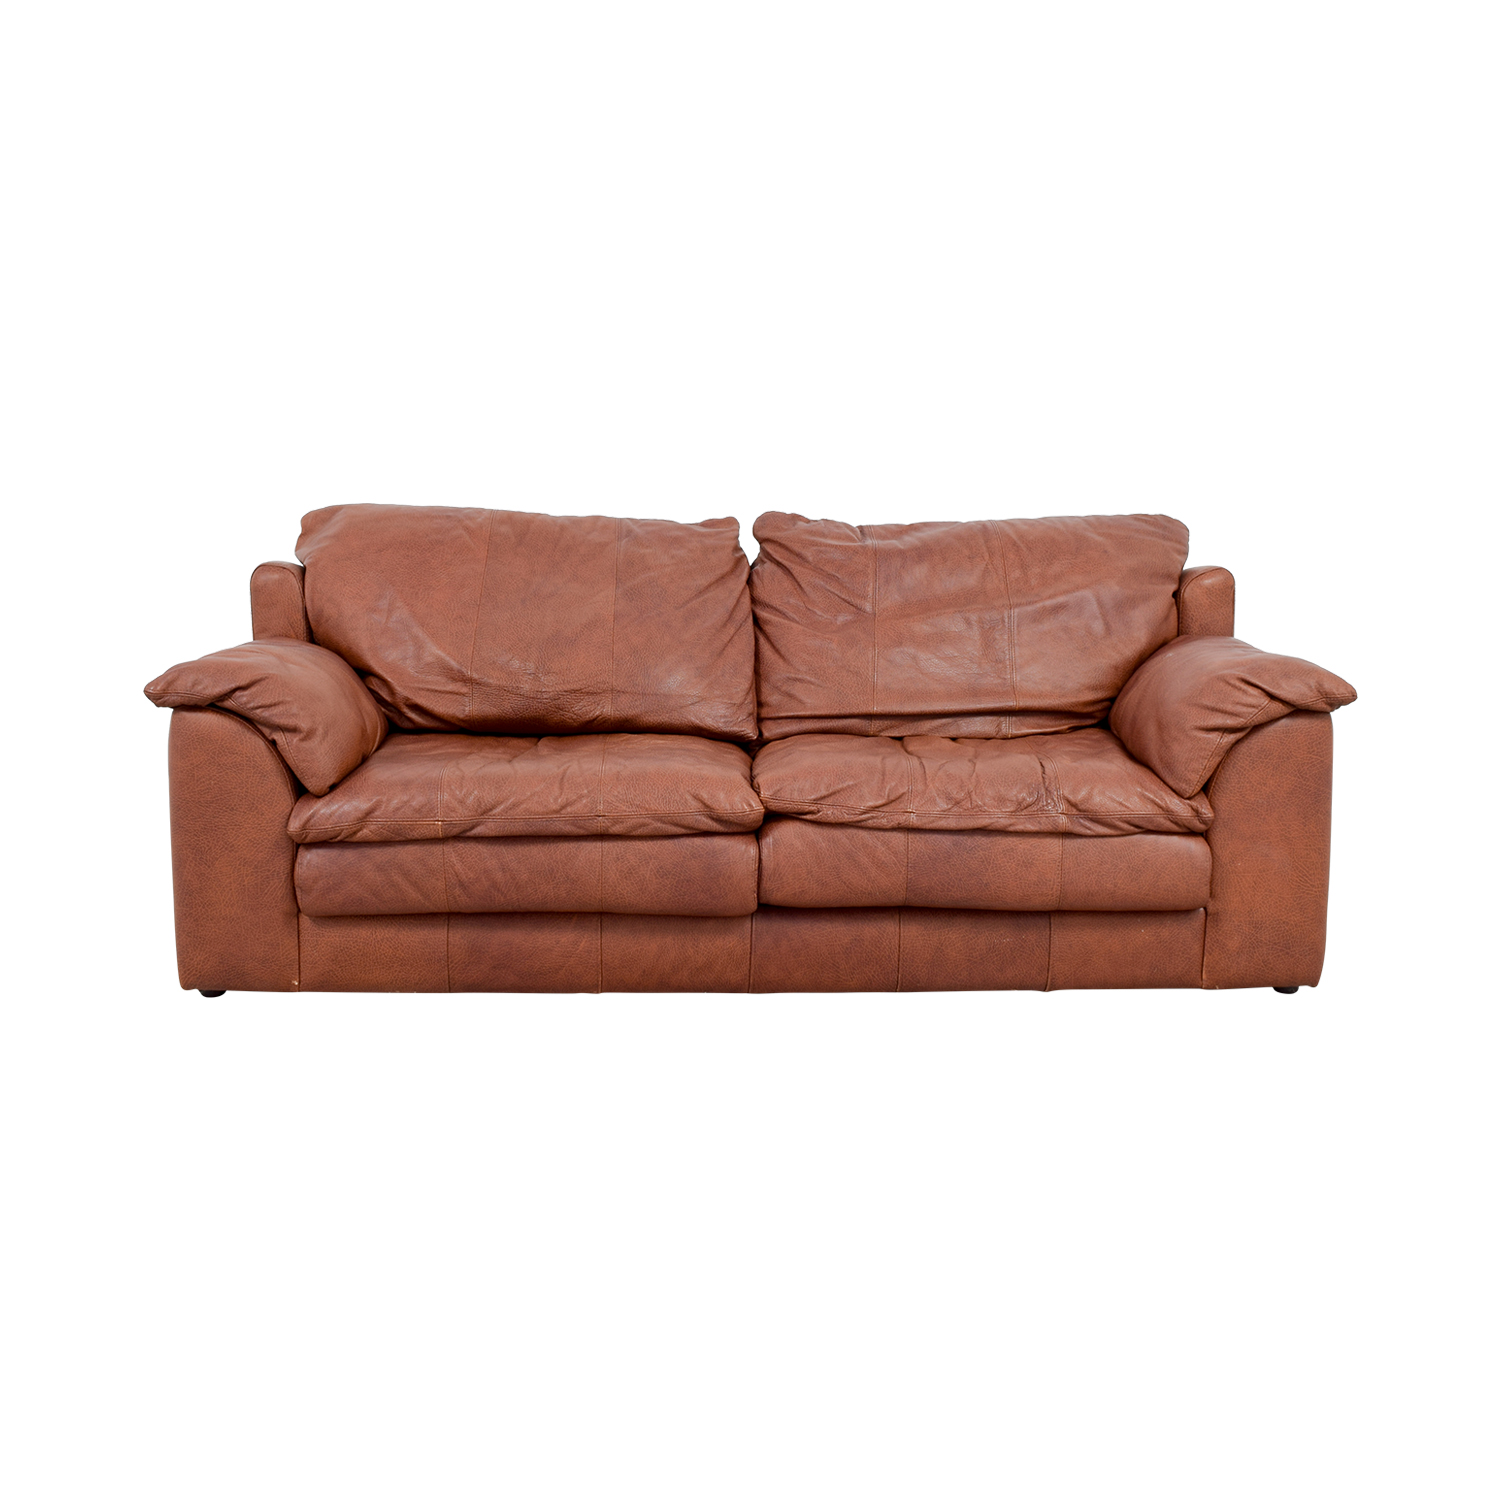 shop Rust Two-Cushion Leather Couch with Pillowed Arms Sofas